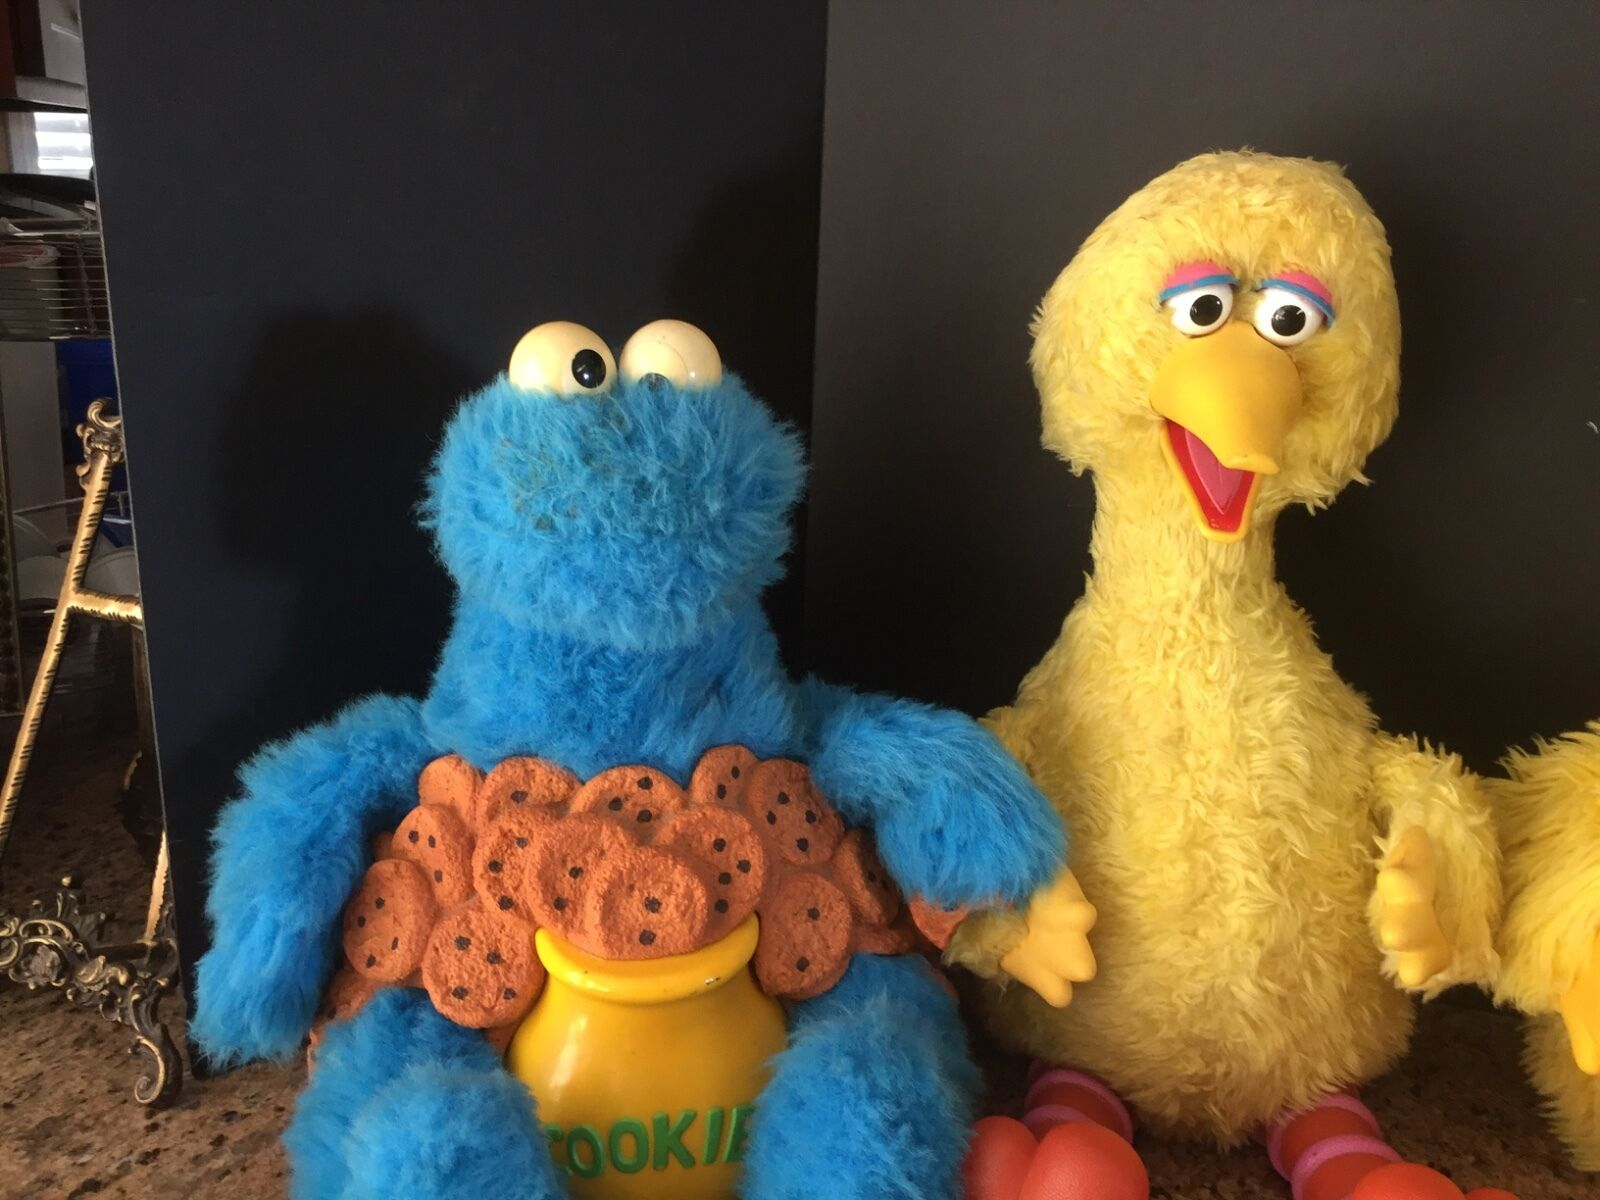 VINTAGE IDEAL SESAME STREET INTERACTIVE BIG BIRD ONLY SOLD AS IS